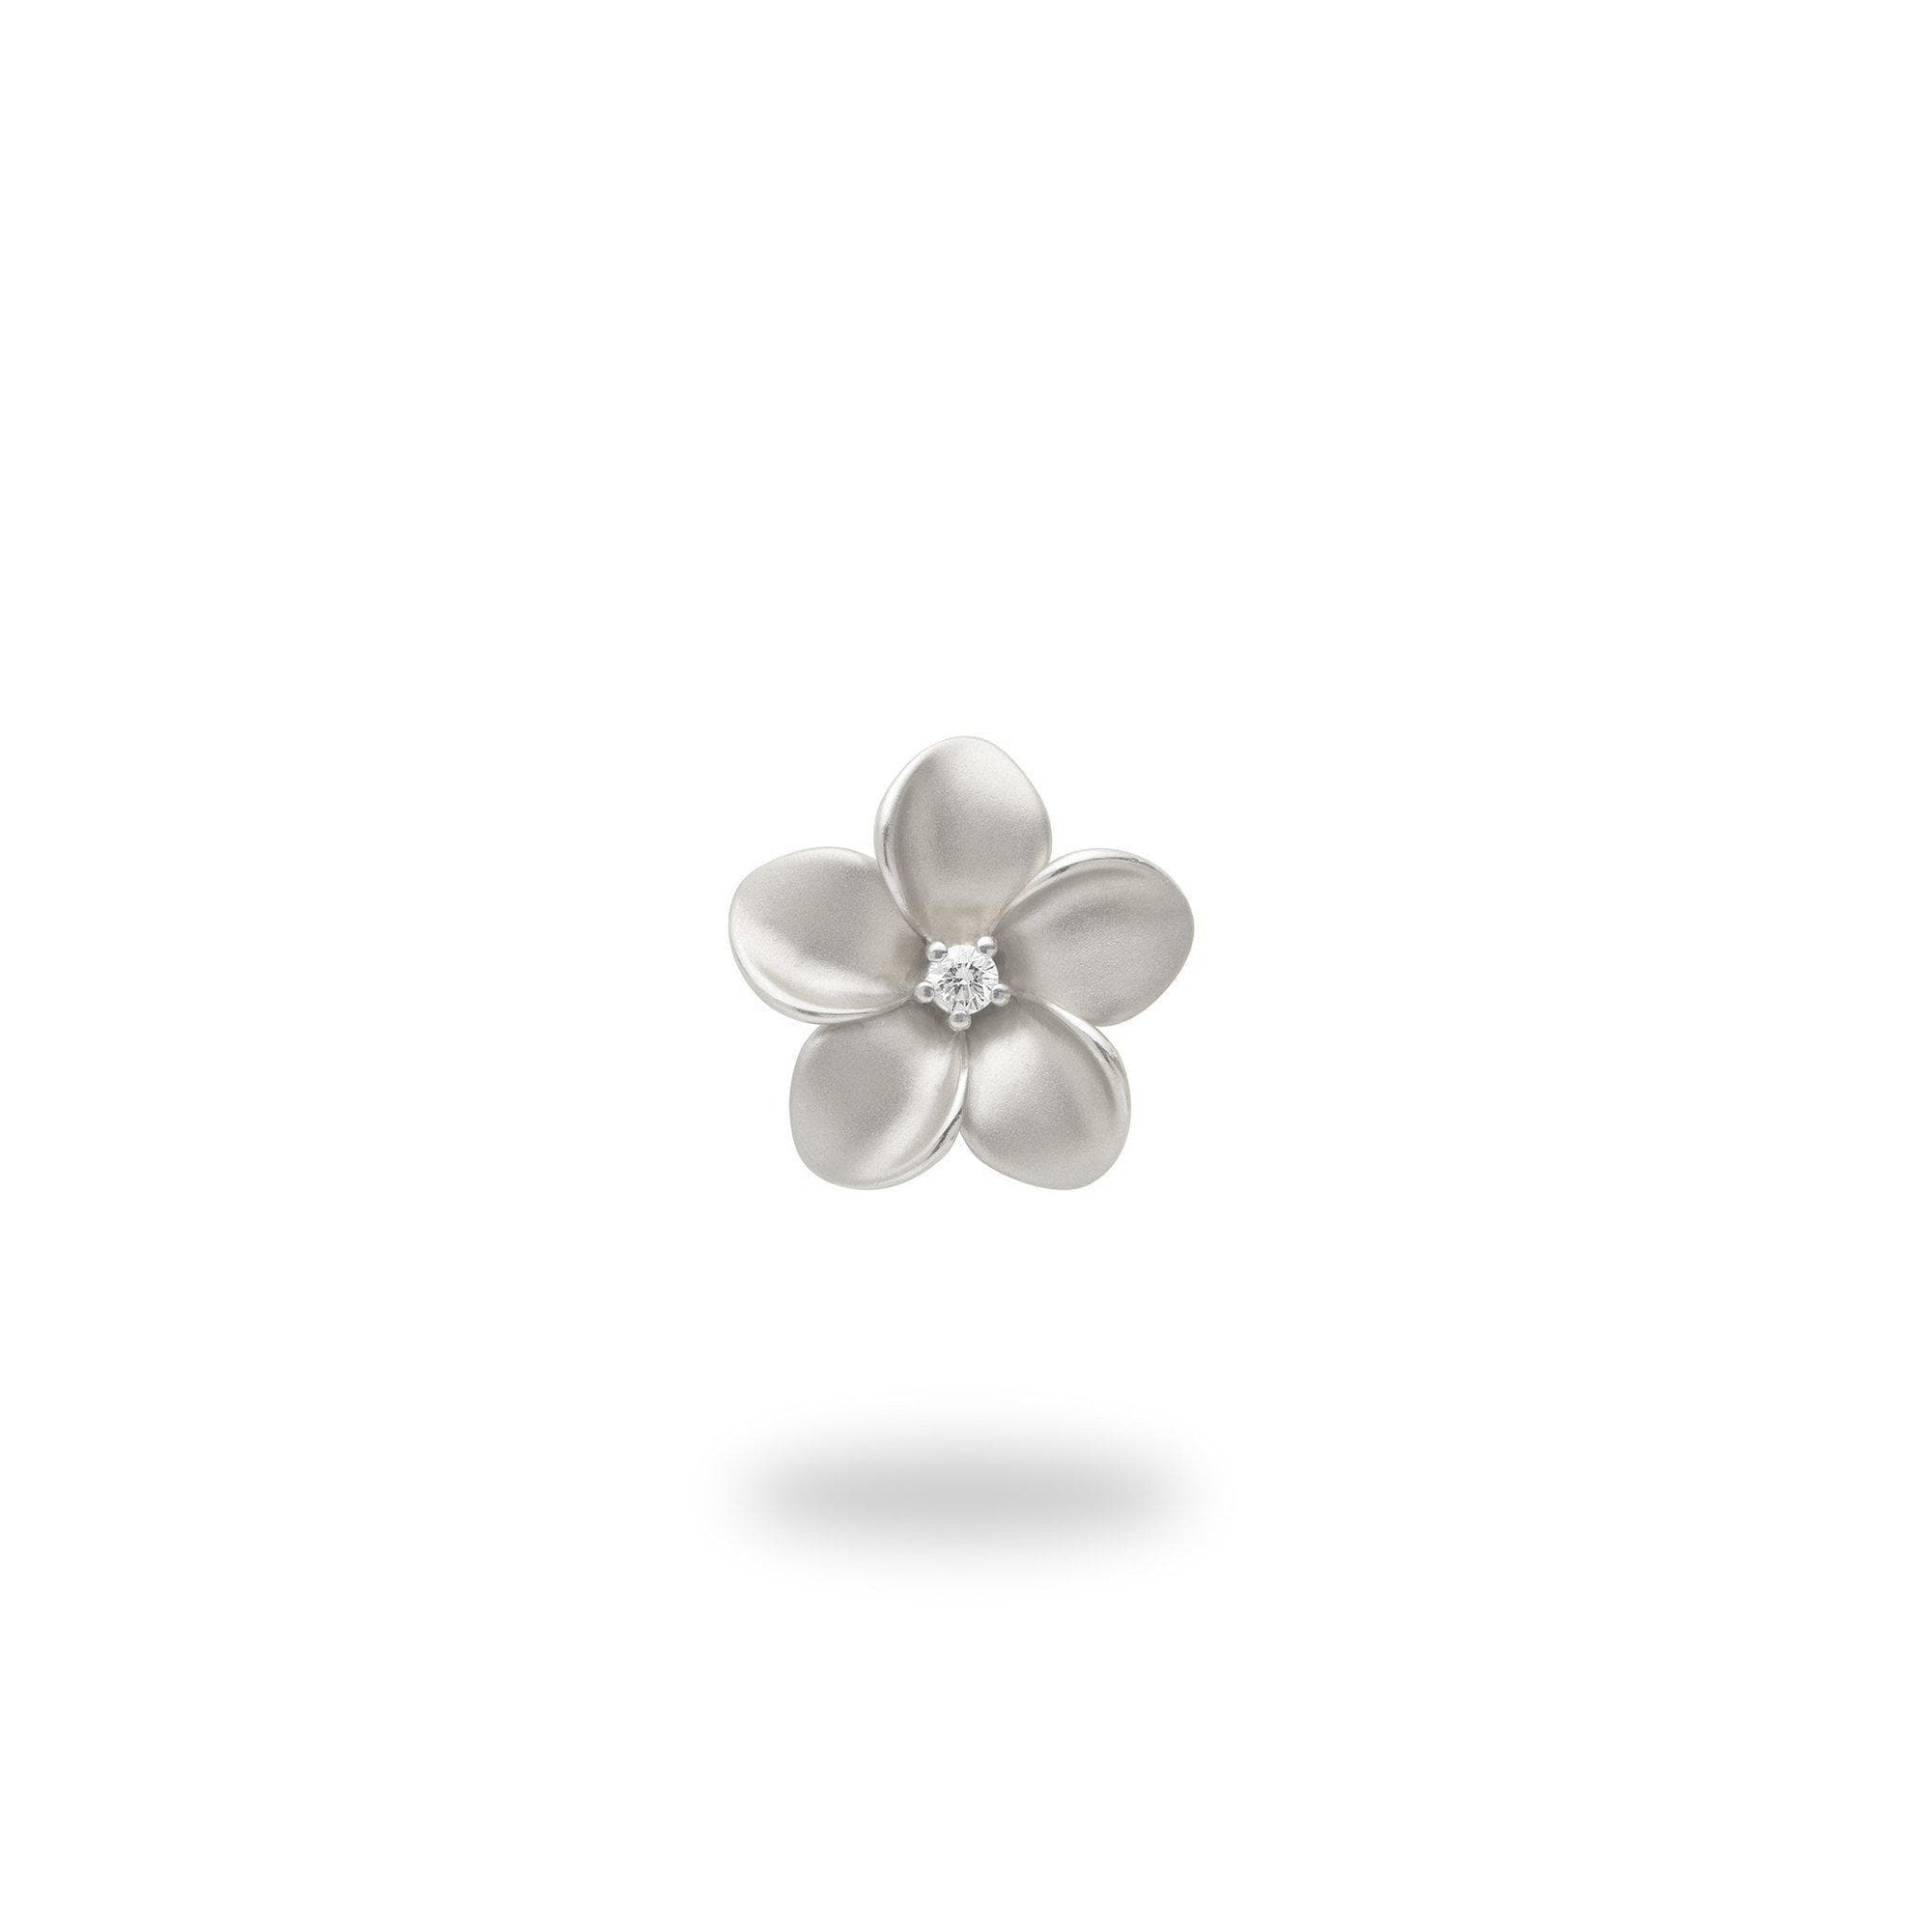 Plumeria Pendant in White Gold with Diamond - 11mm-[SKU]